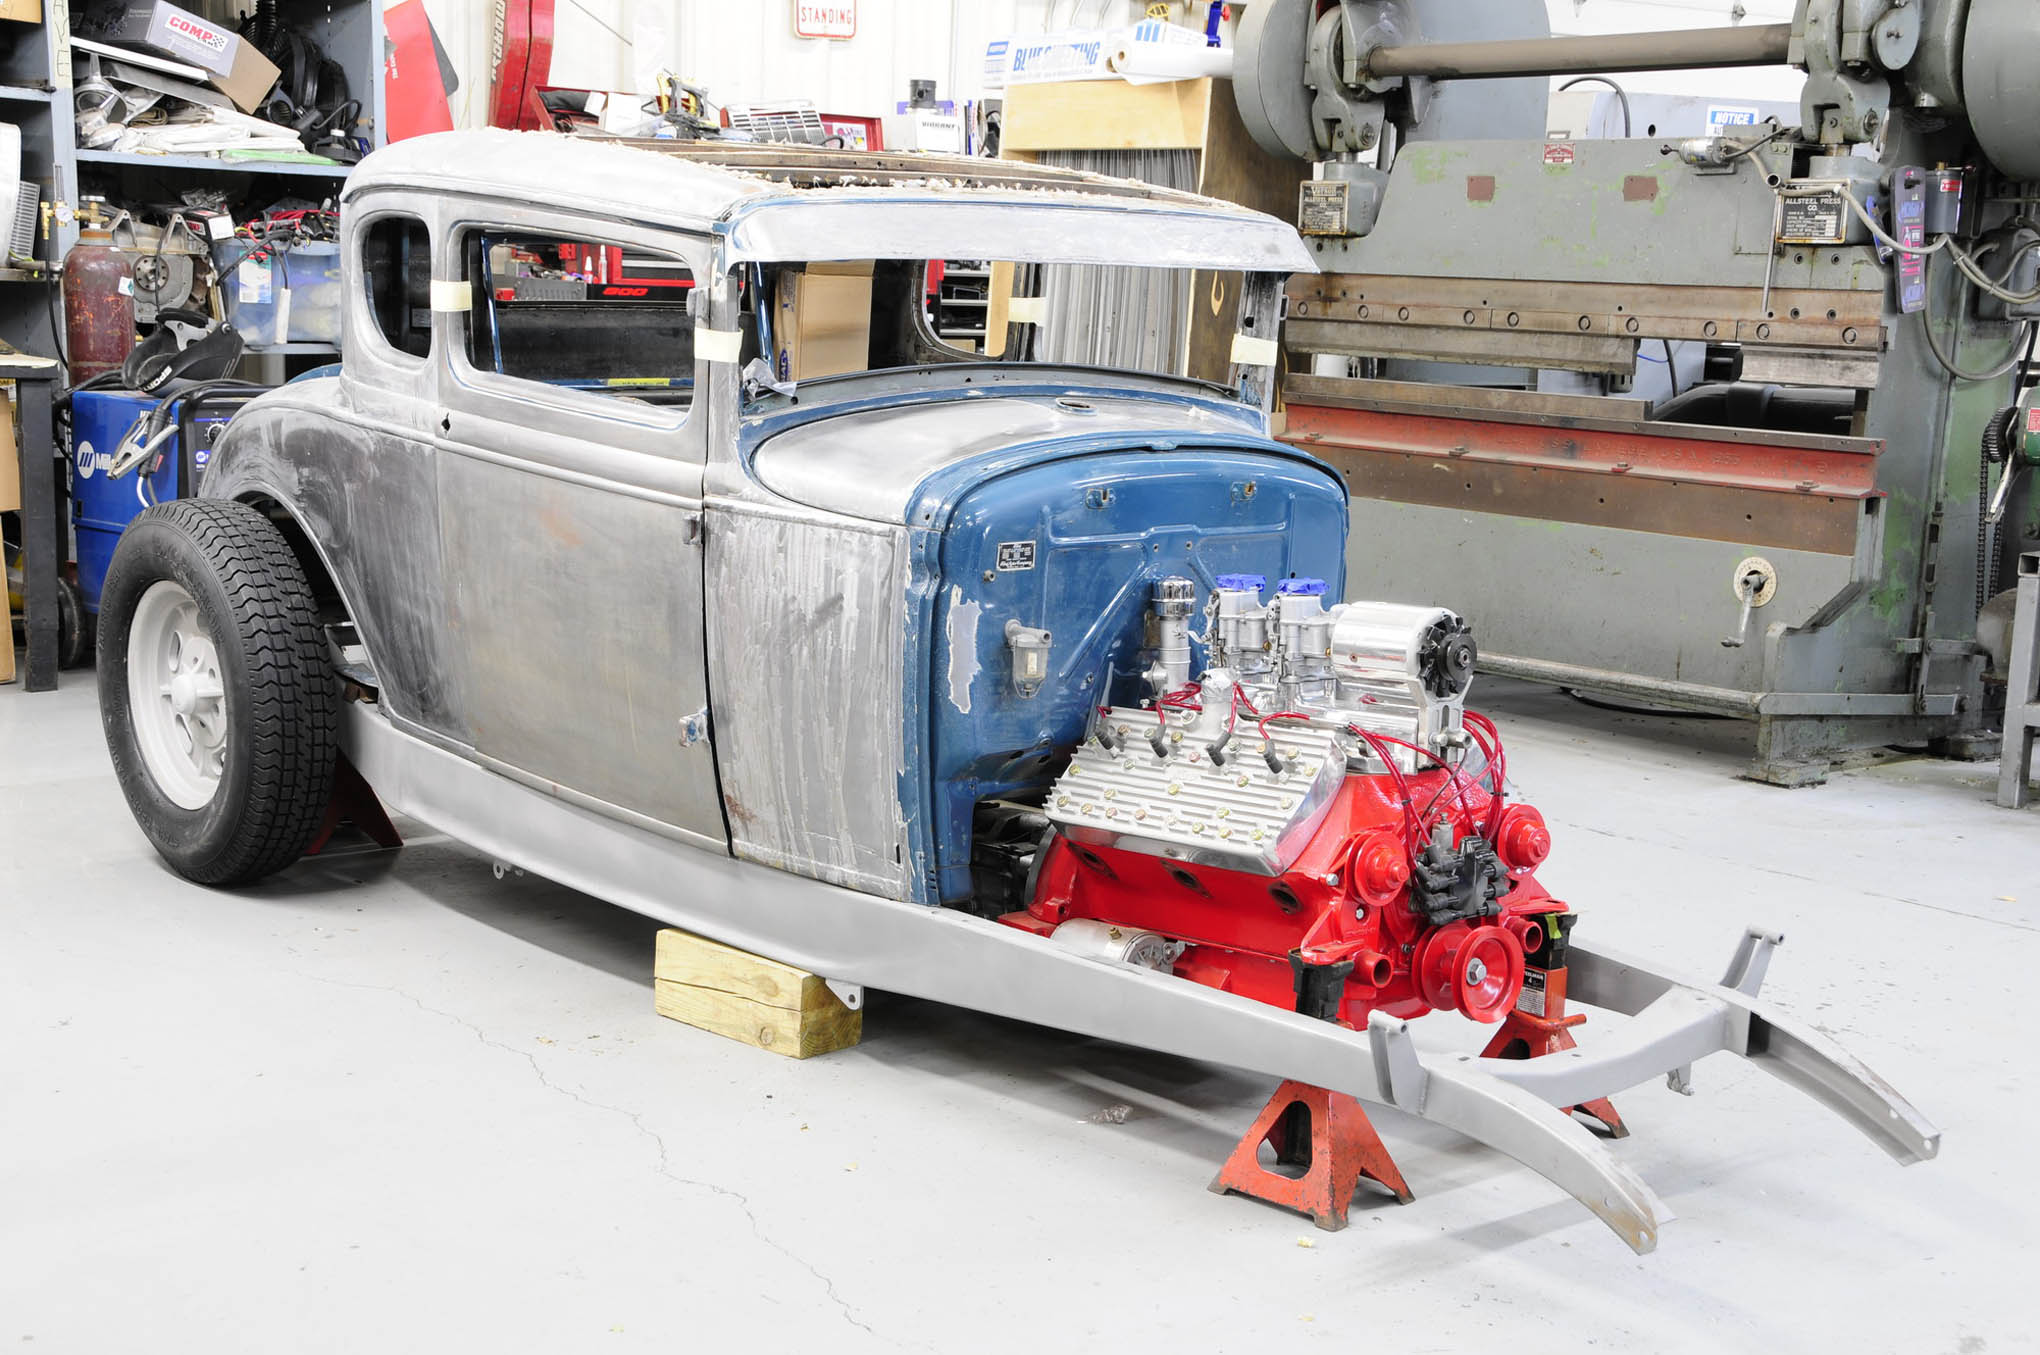 Nothing says traditional hot rod like a Model A coupe on Deuce 'rails with an balanced chop, full-house Flathead, and Halibrand wheels. We can hardly wait to see more on this.